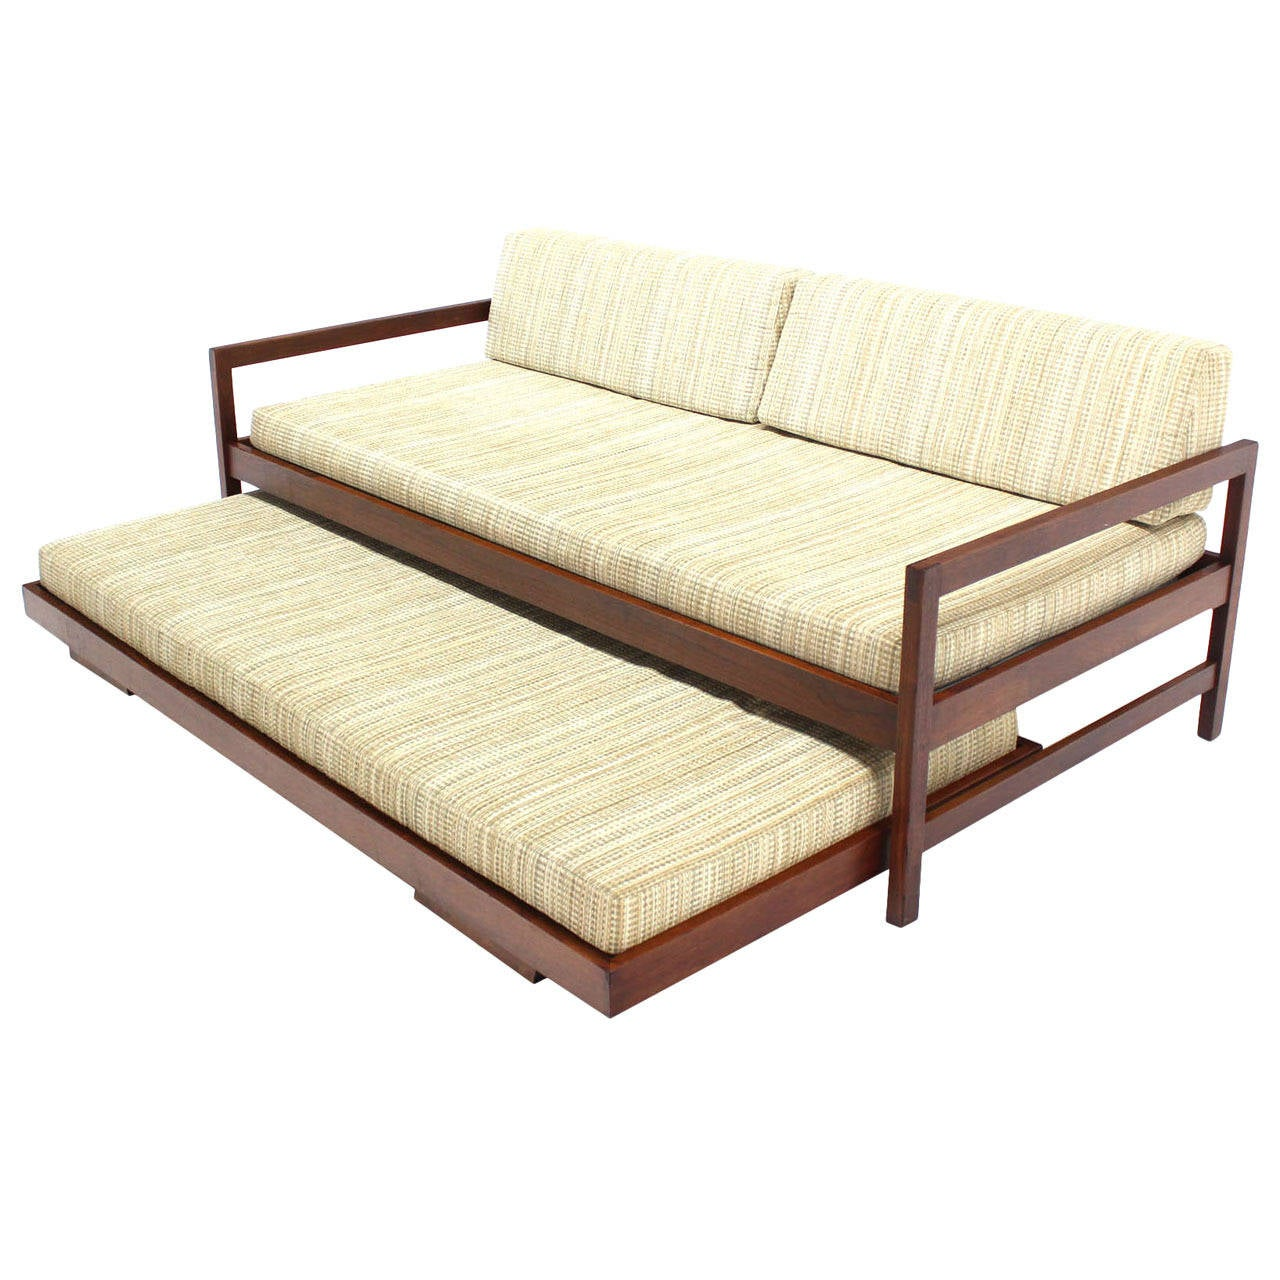 Solid Walnut Frame Mid Century Modern Trundle Pull Out Daybed At 1stdibs